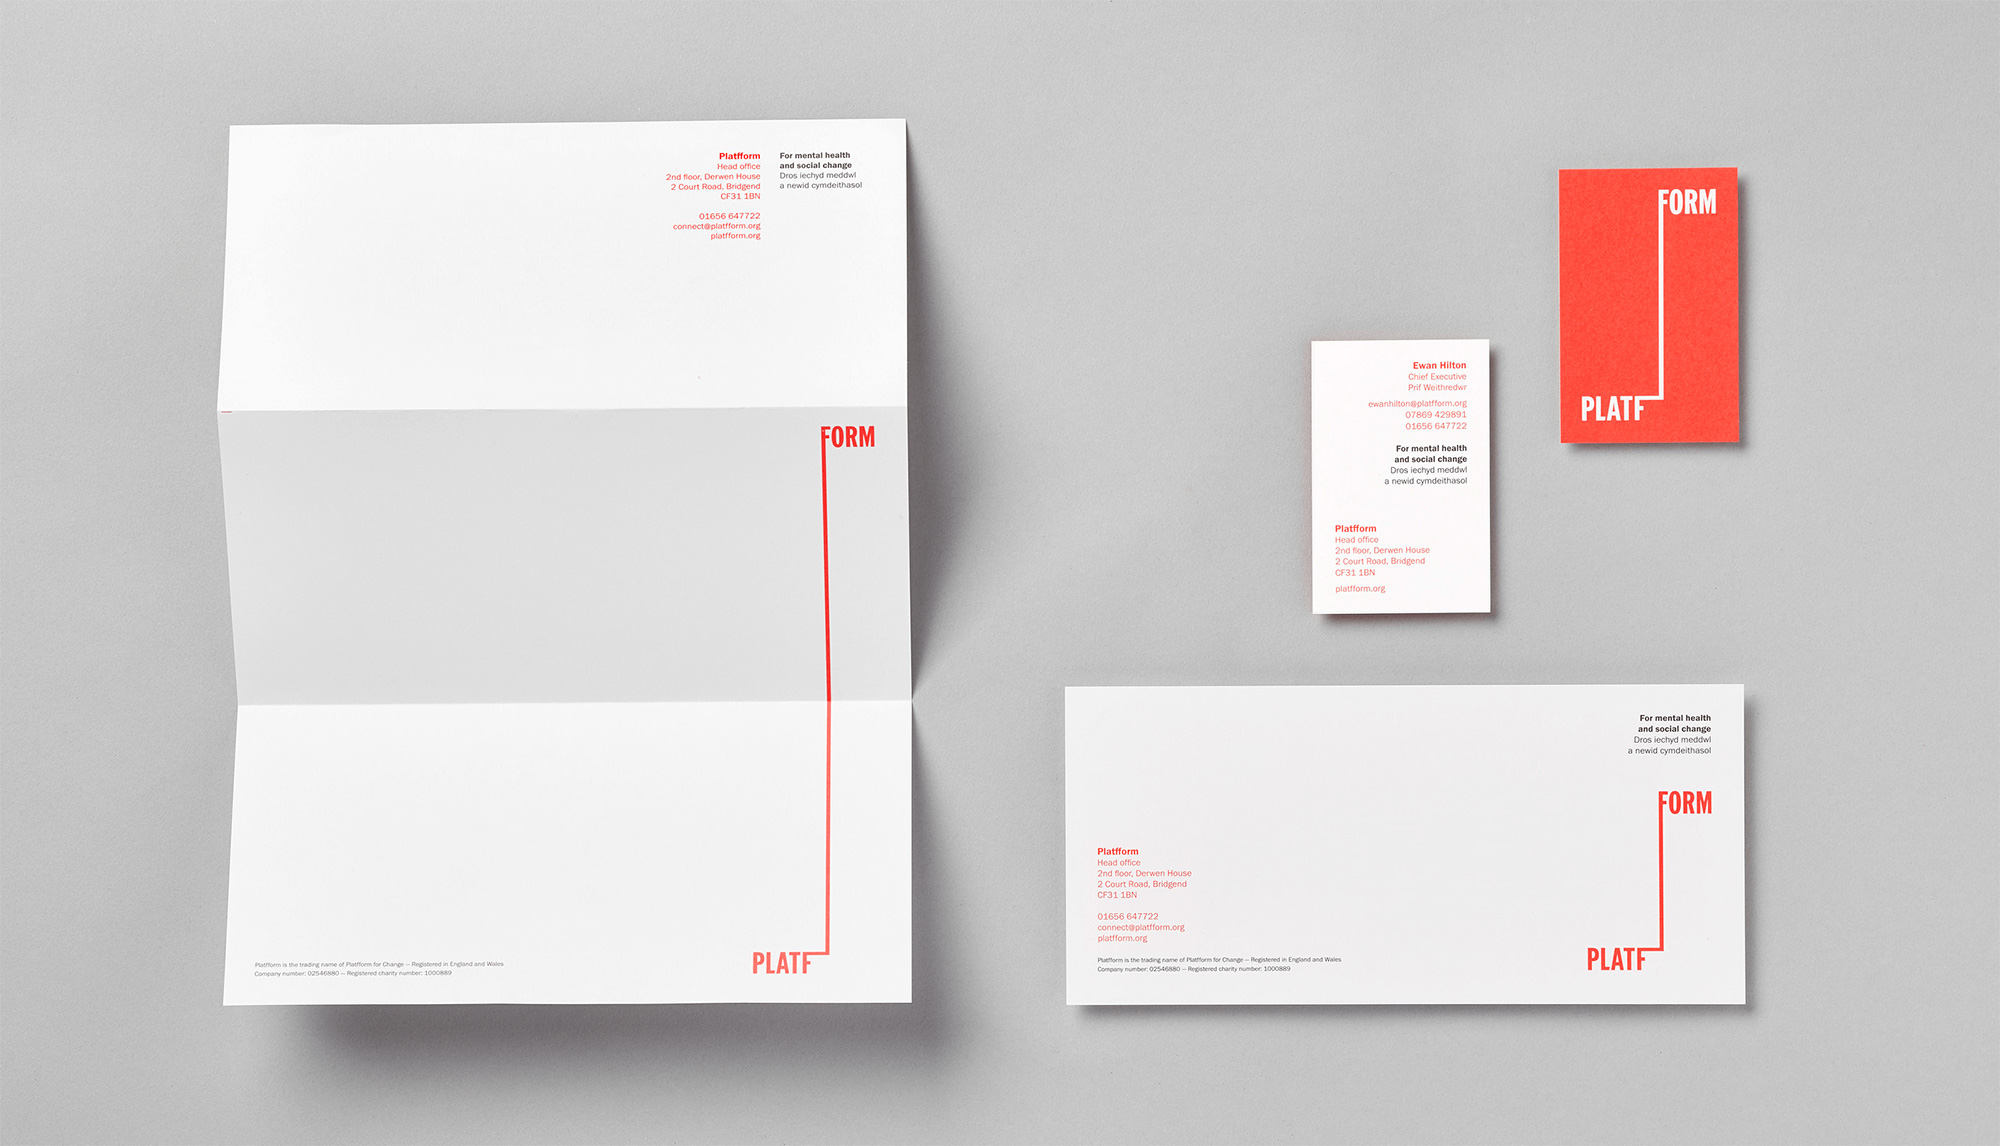 New Logo and Identity for Platfform by Clout